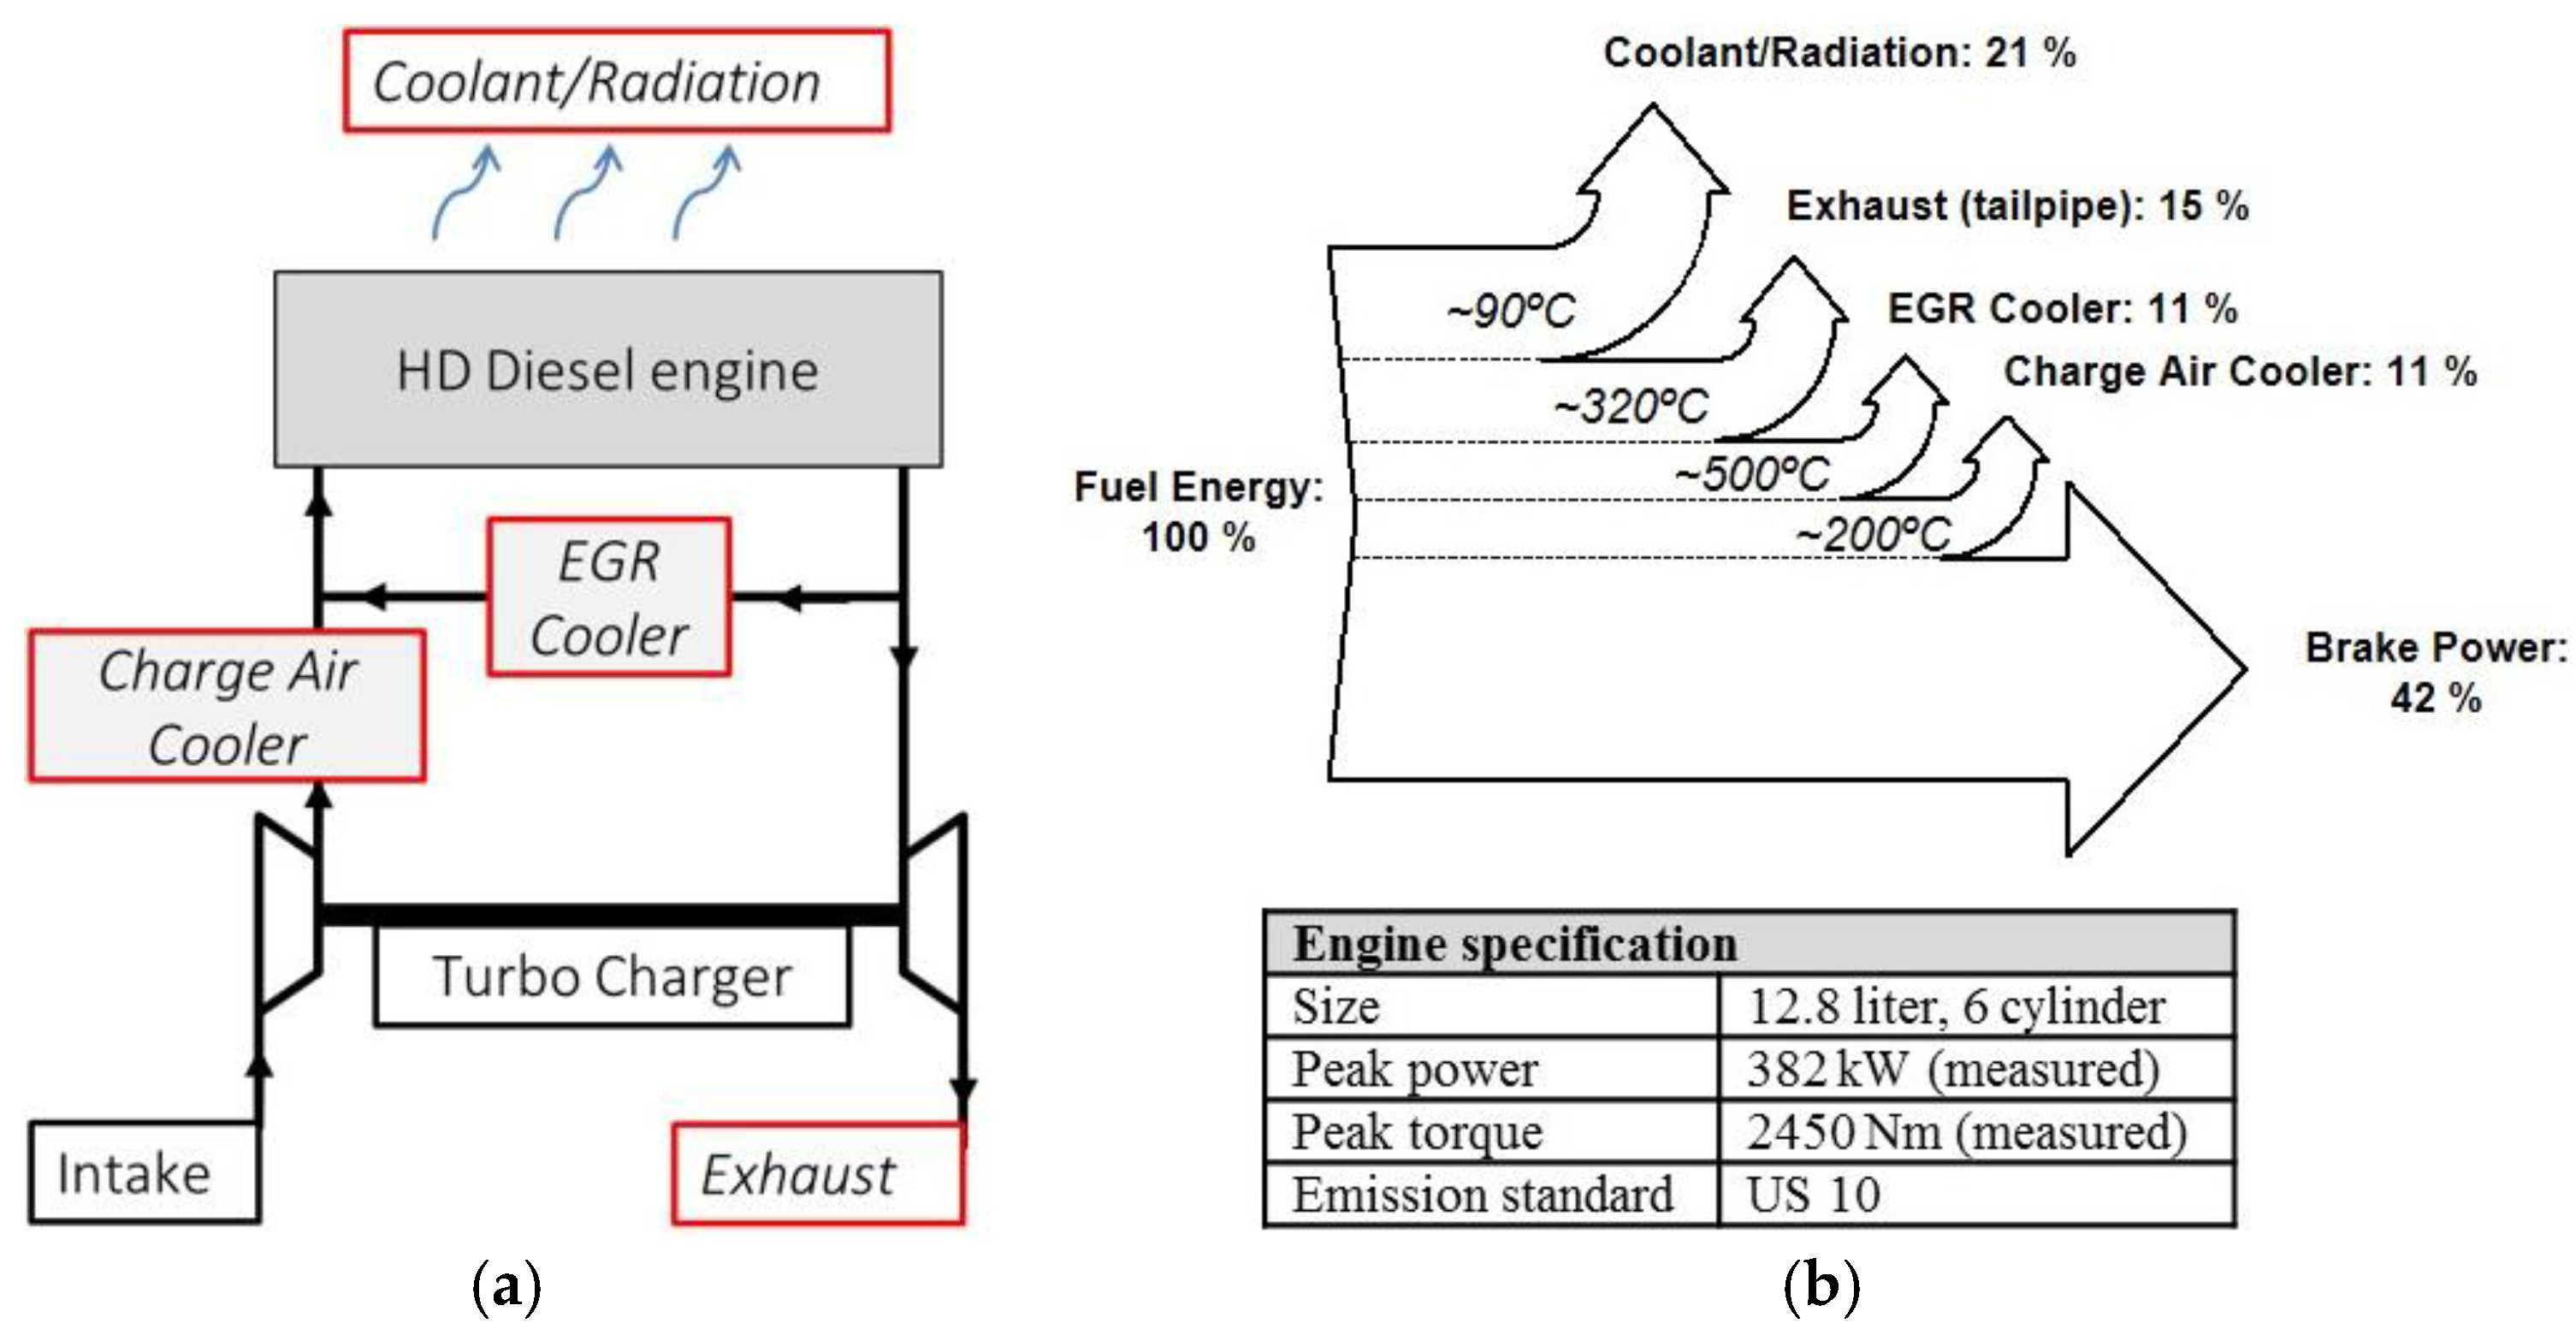 Engine Cooling Diagram Energies Free Full Text Of Engine Cooling Diagram